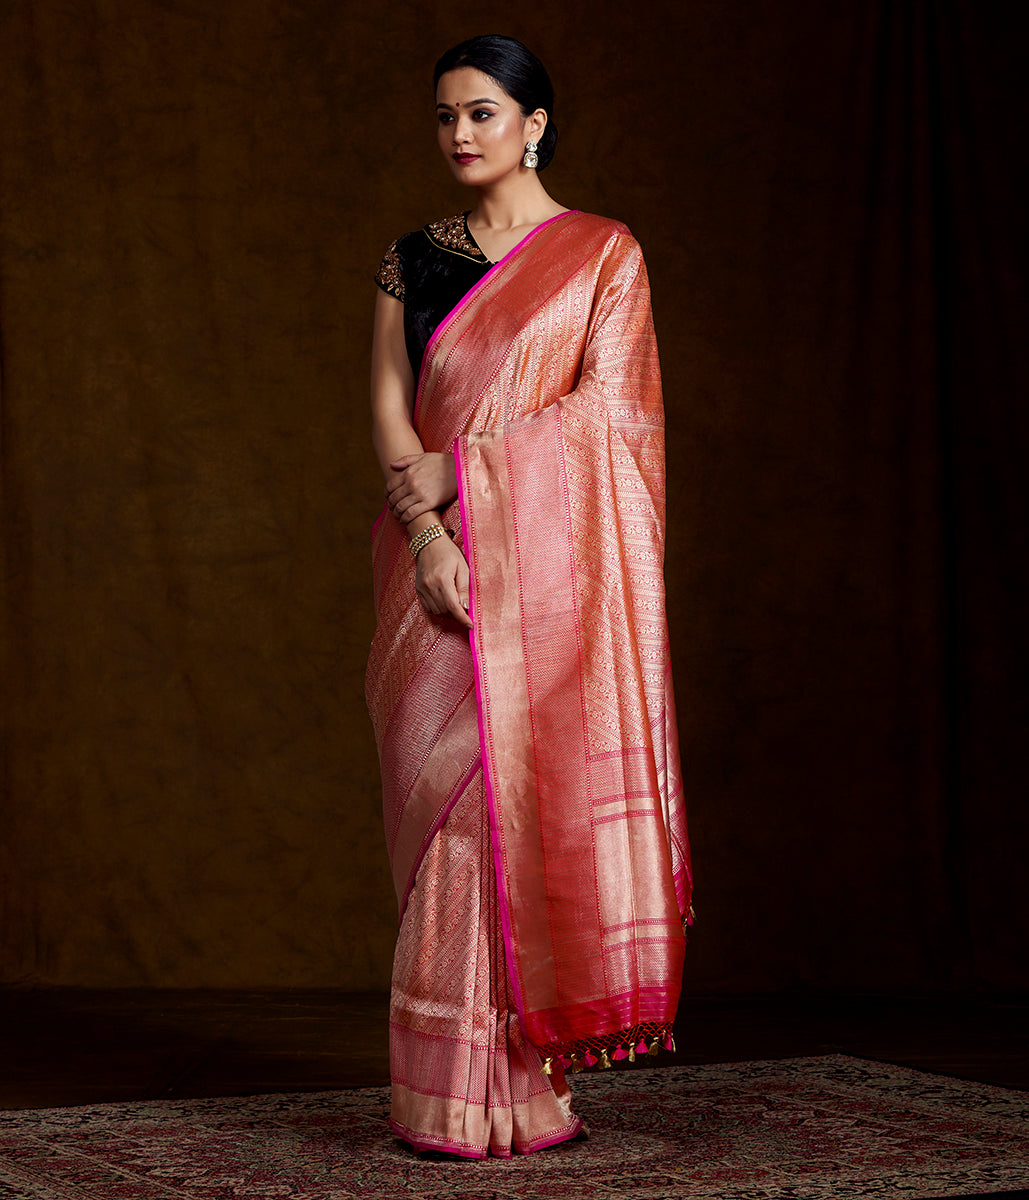 Handwoven Banarasi Kimkhab in Peach and Pink Dual Tone